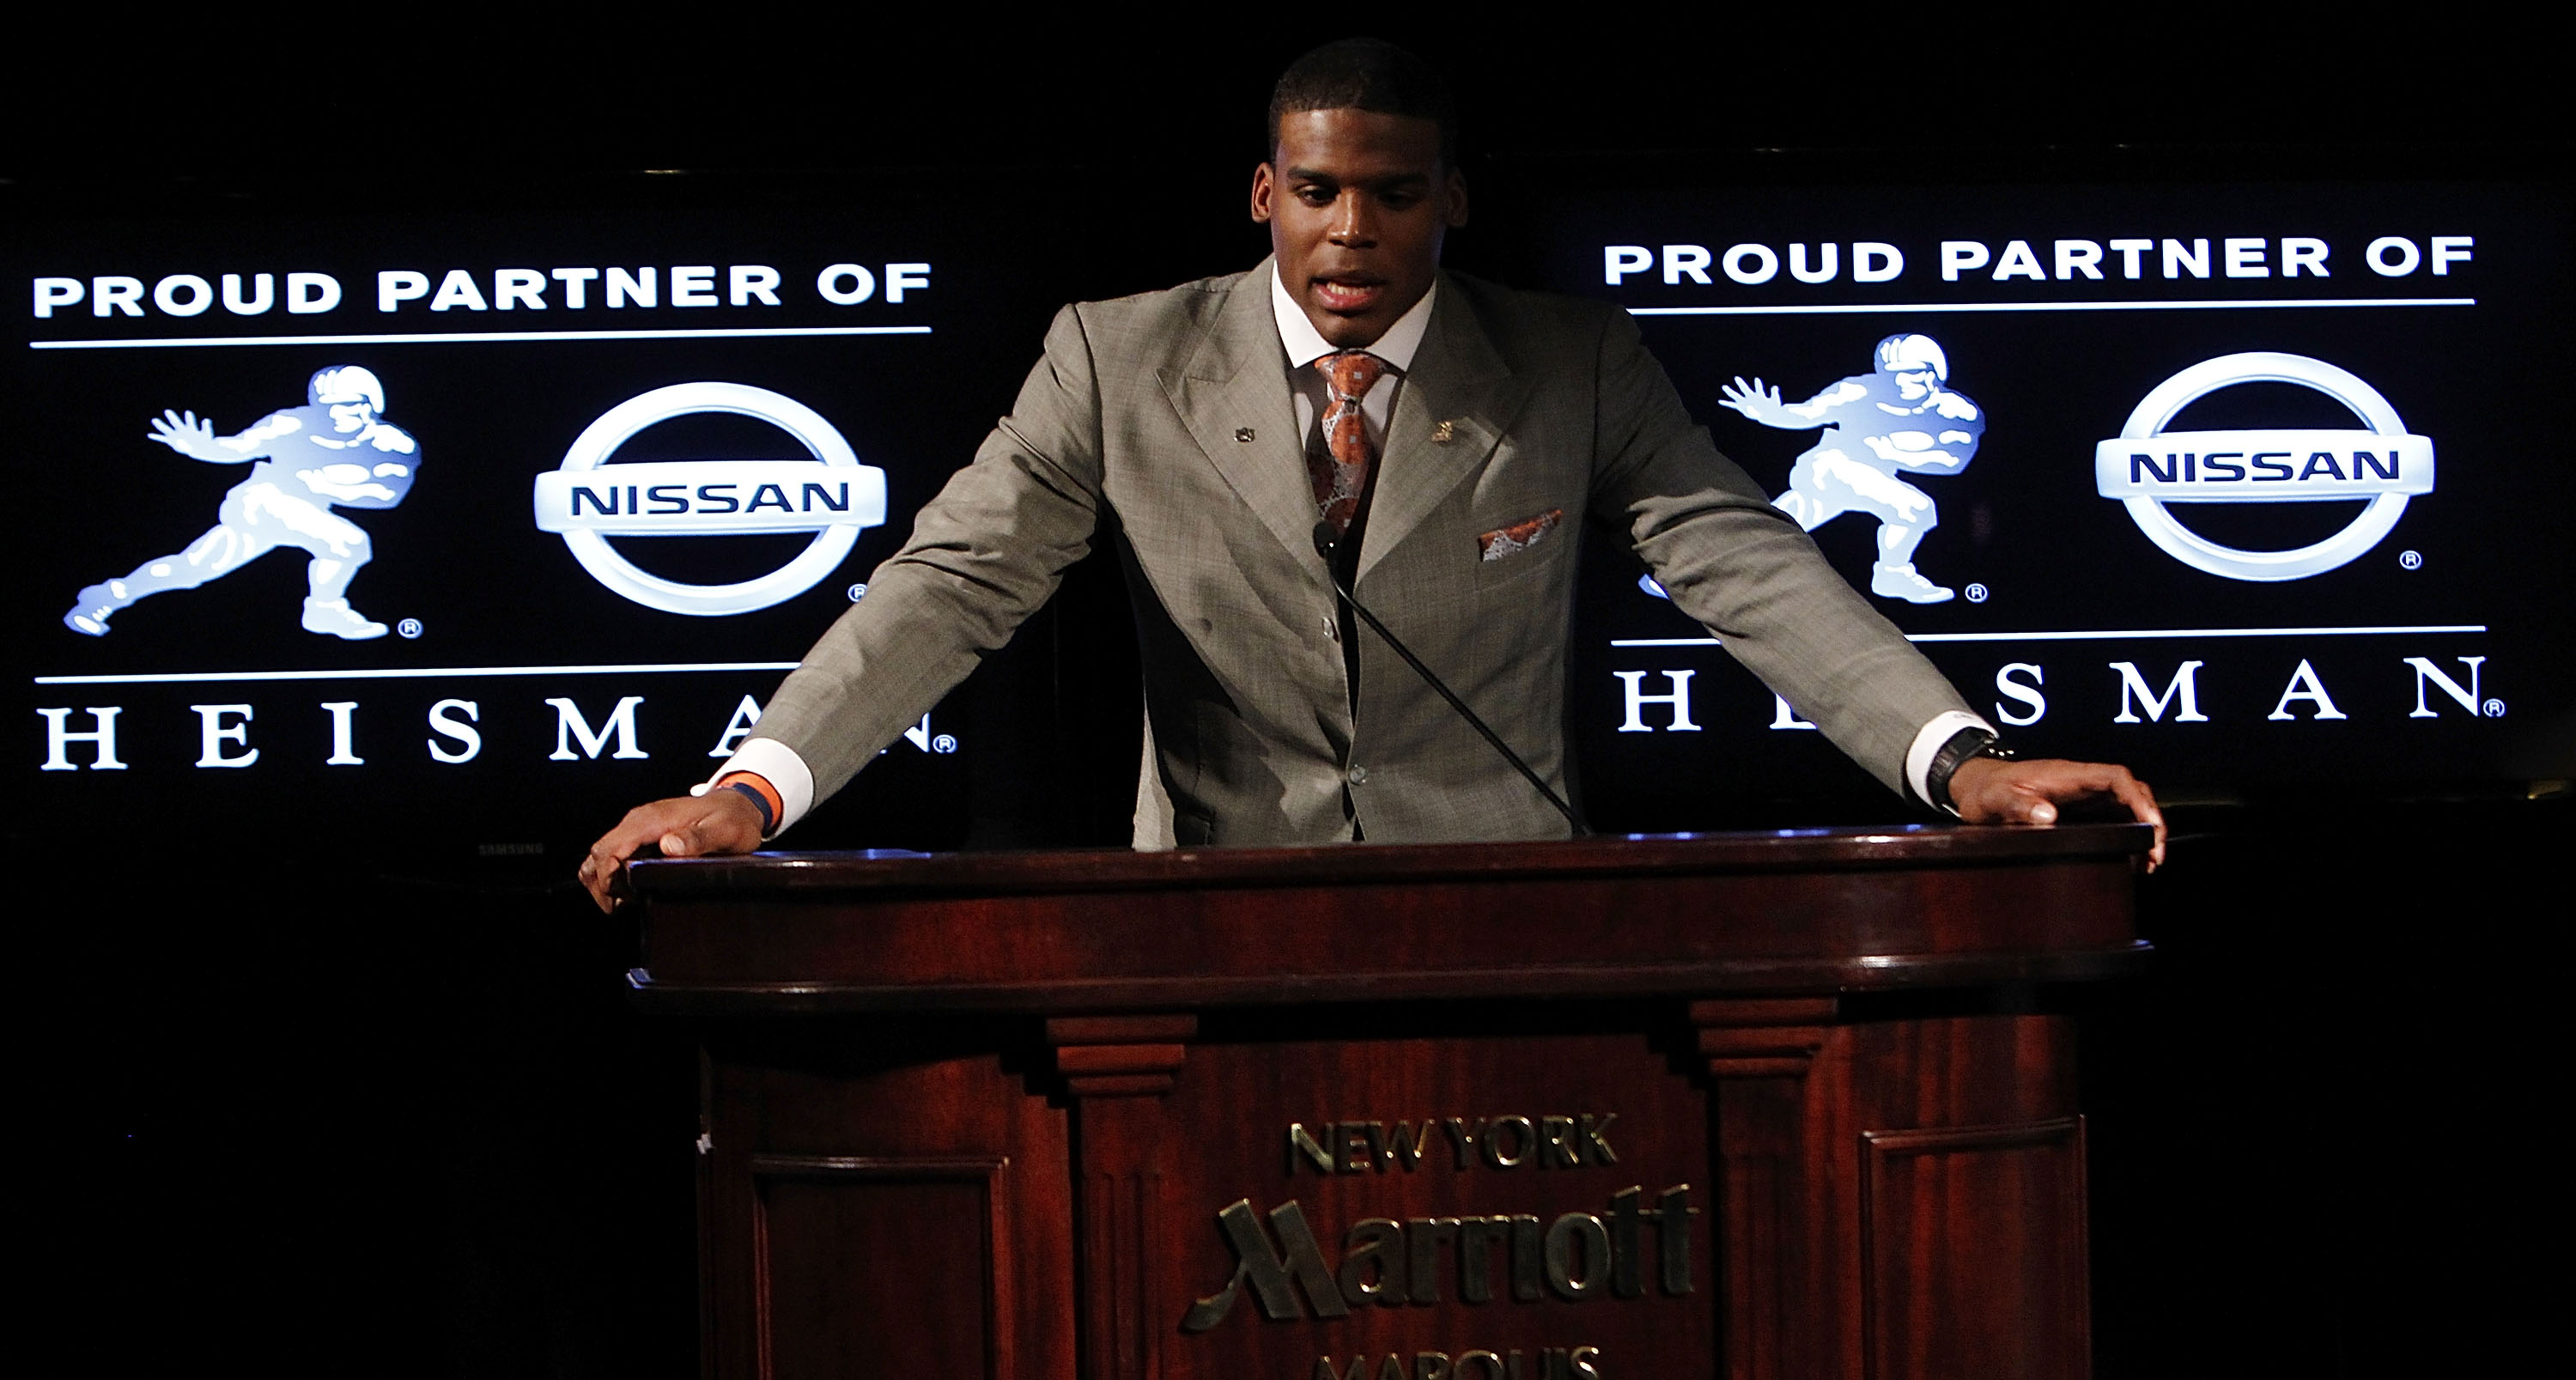 Heisman Trophy 2010: Where Does Cam Newton Rank in Heisman